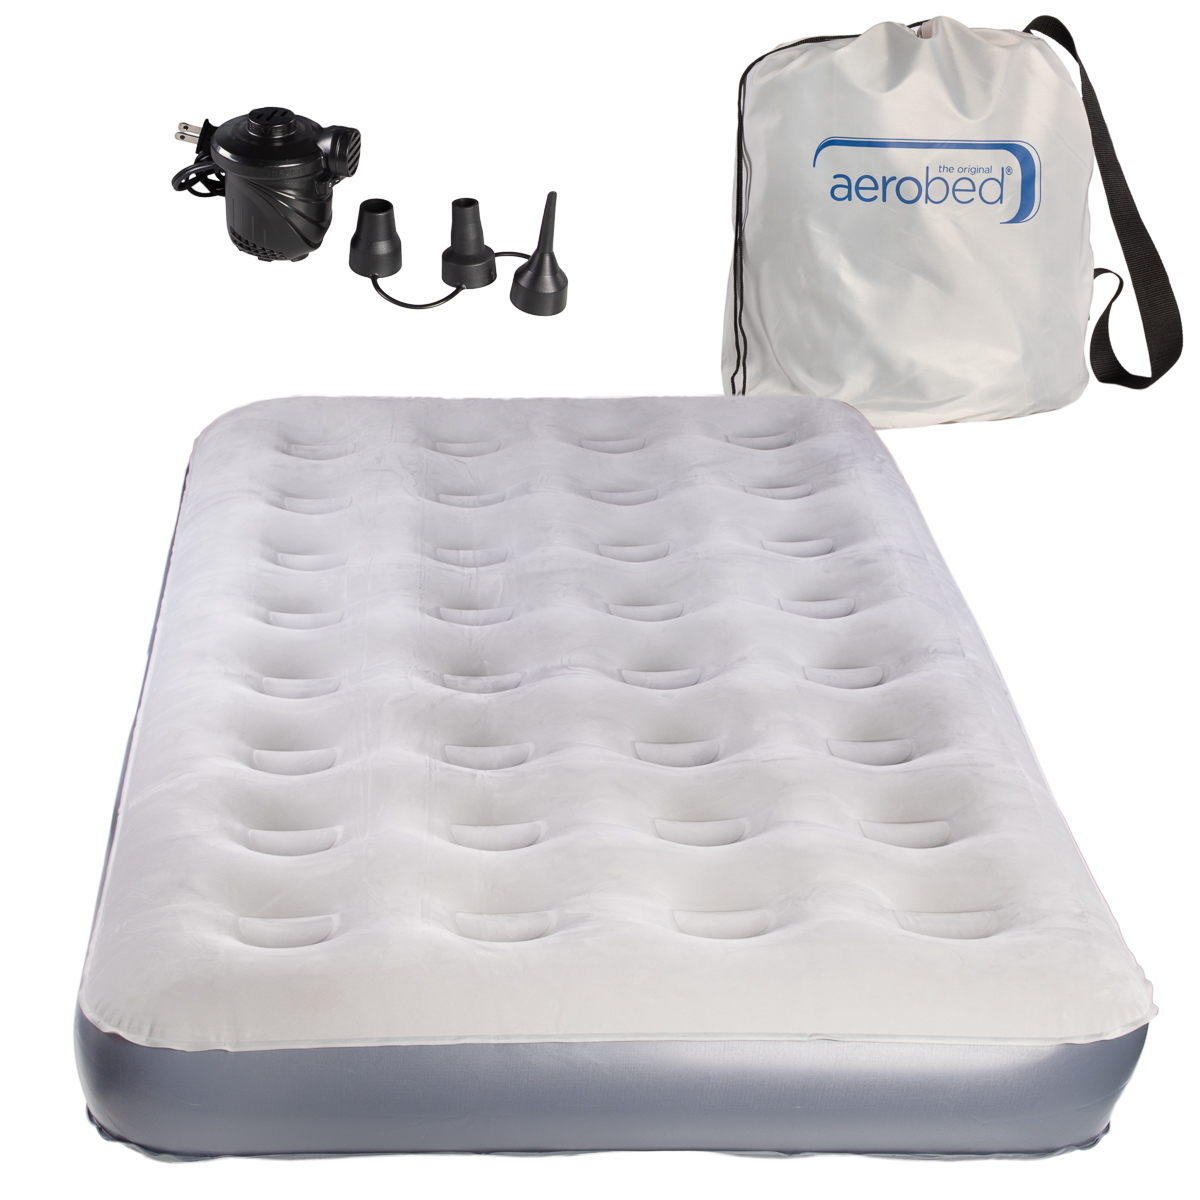 Size Aerobed Twin with Handheld Pump and Storage Bag Approx 74 x 39 x 8 inches Fits Standard Size Sheets